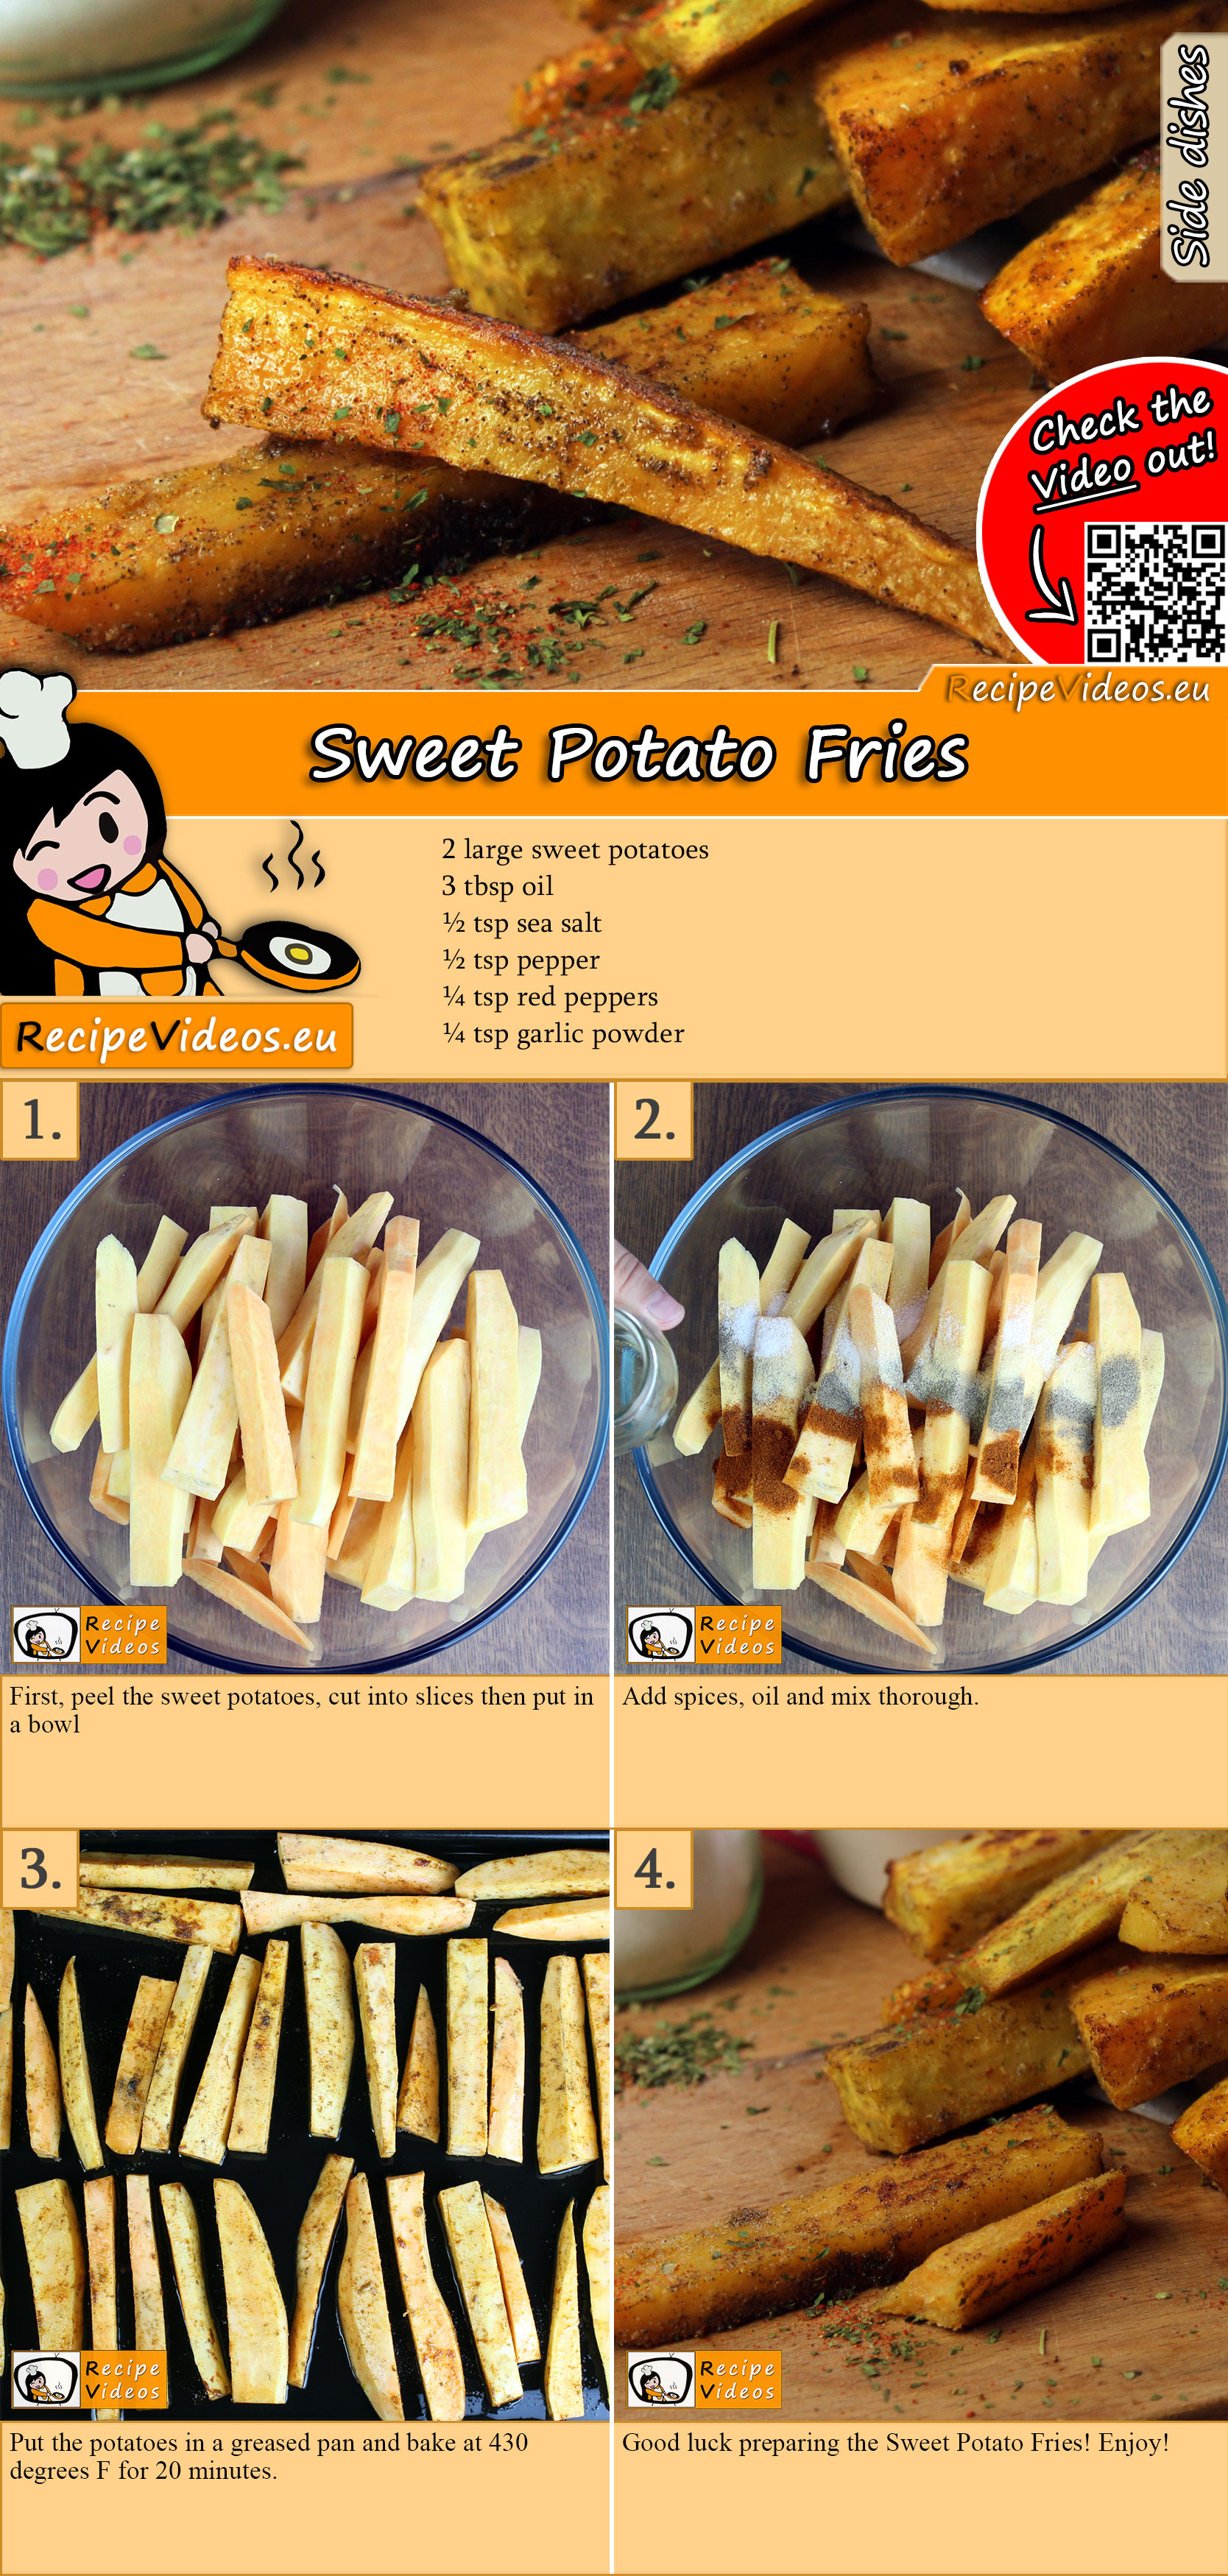 Sweet Potato Fries recipe with video